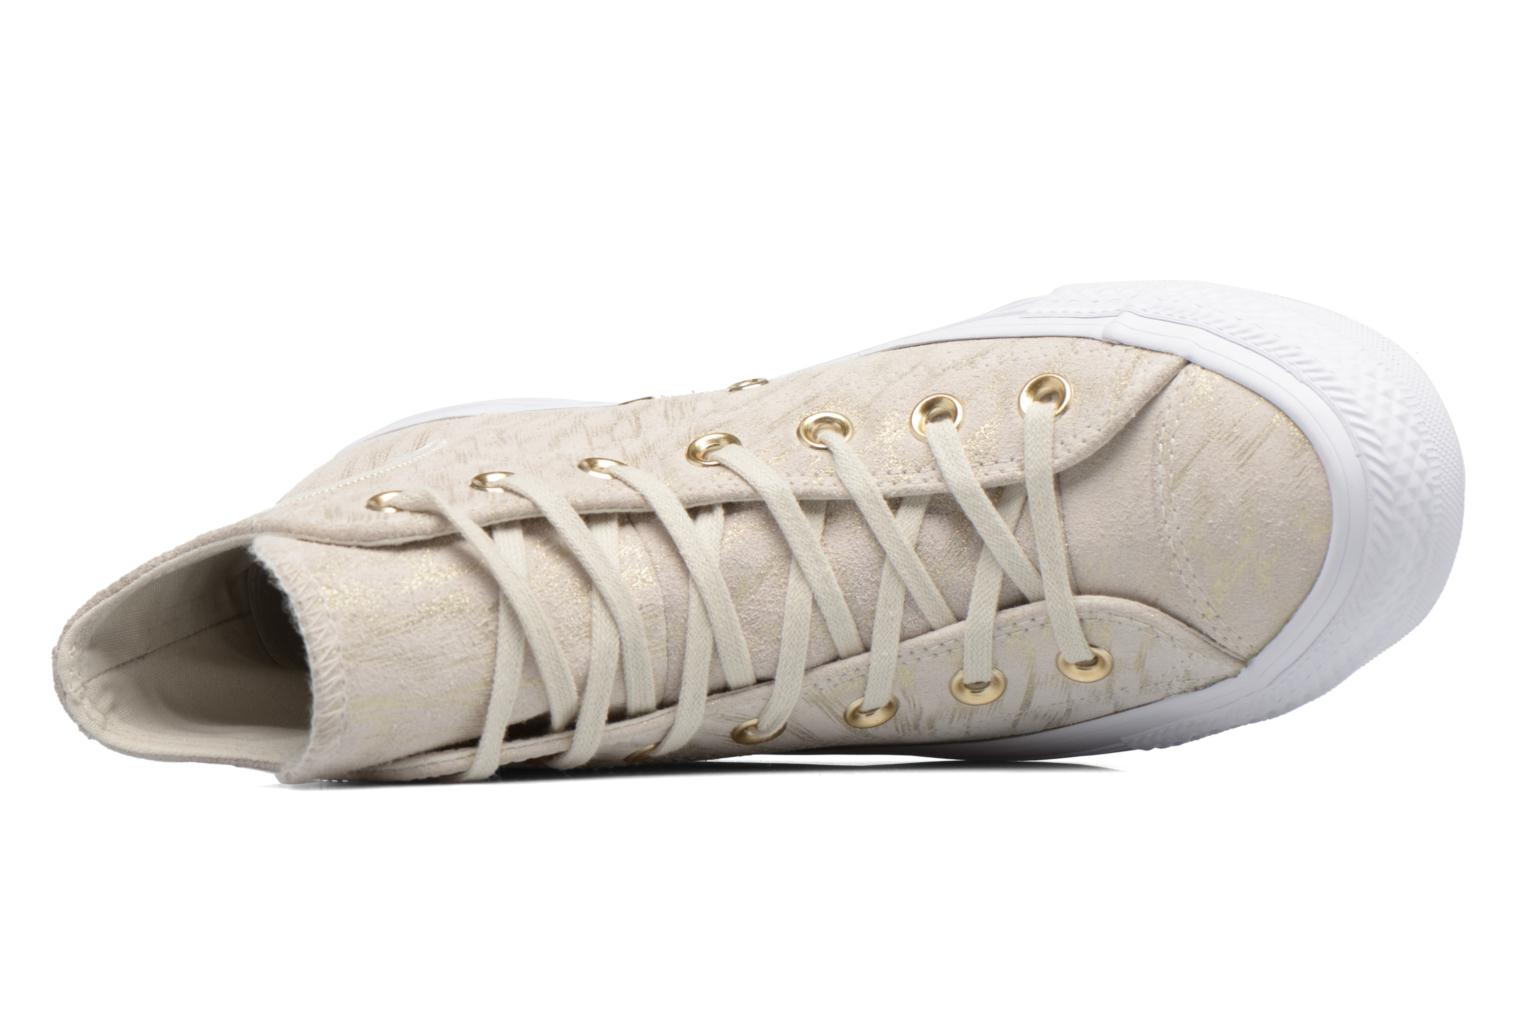 Chuck Taylor All Star Shimmer Suede Hi Buff/Buff/White